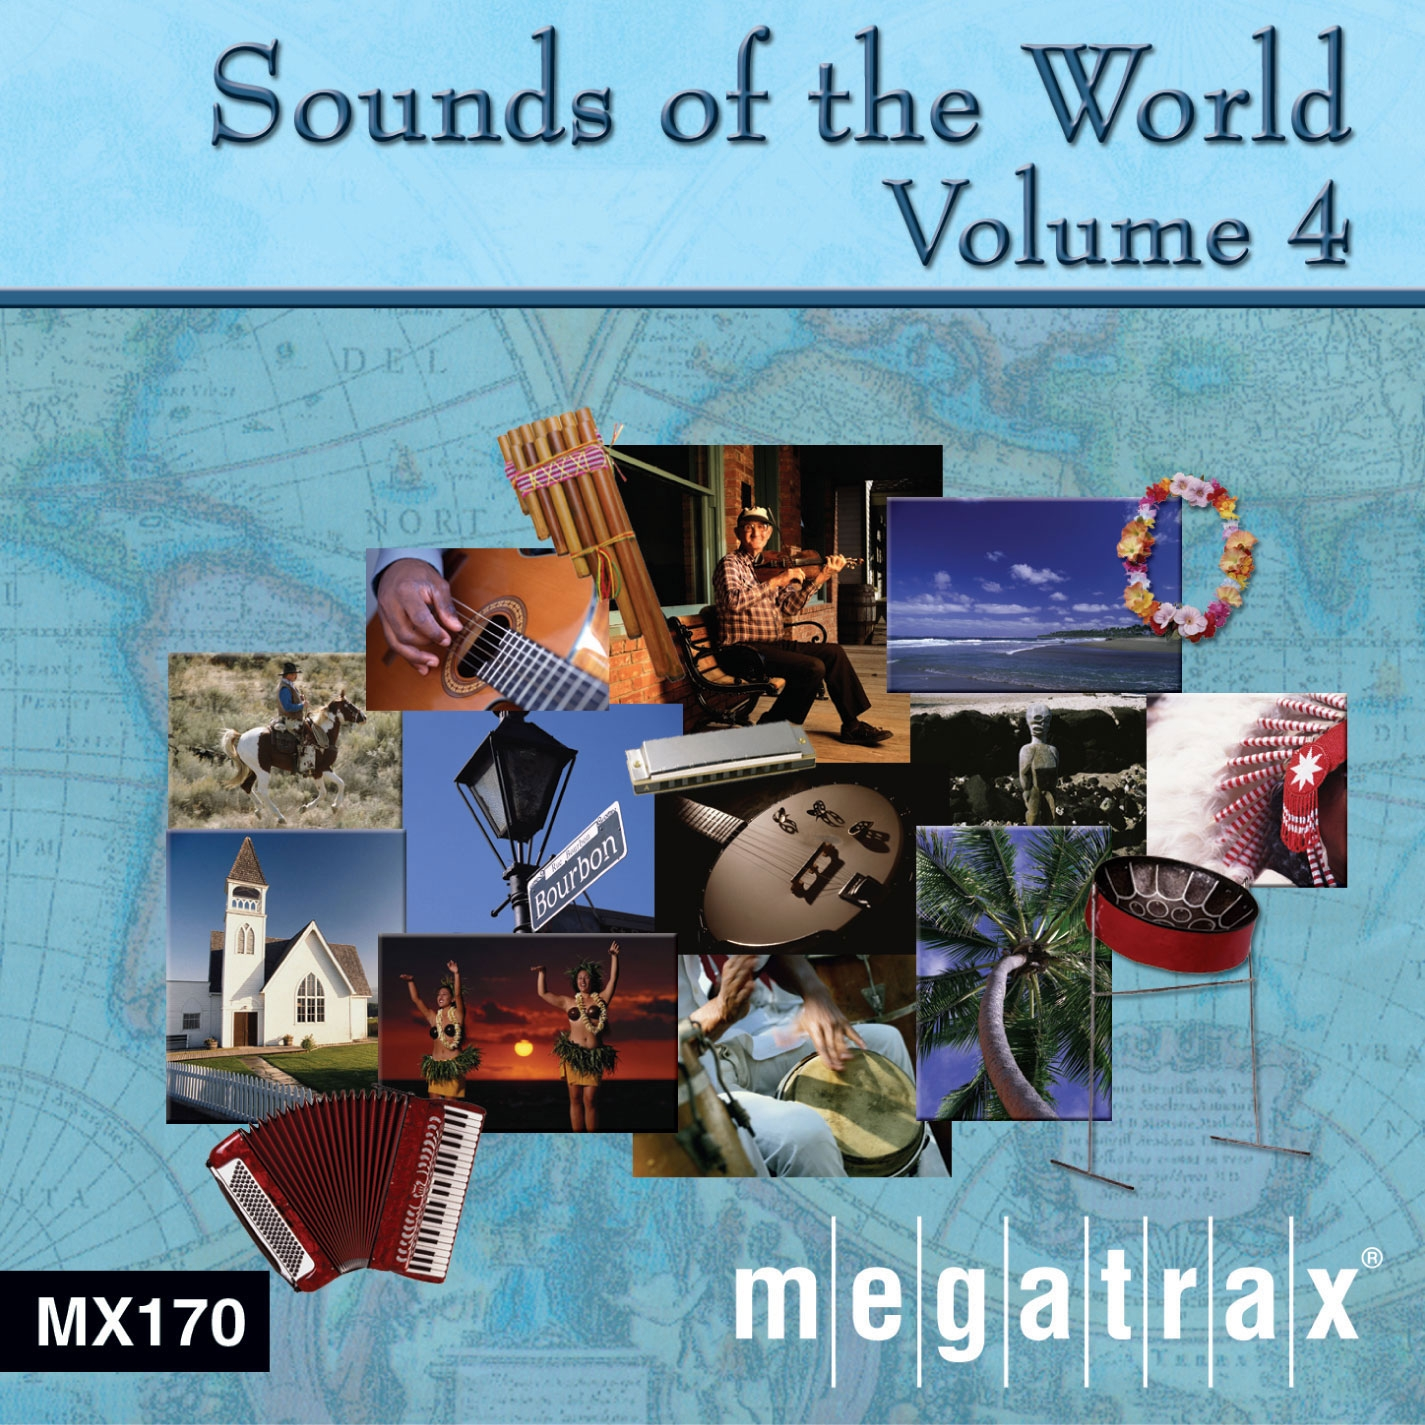 Sounds of the World Vol. 4